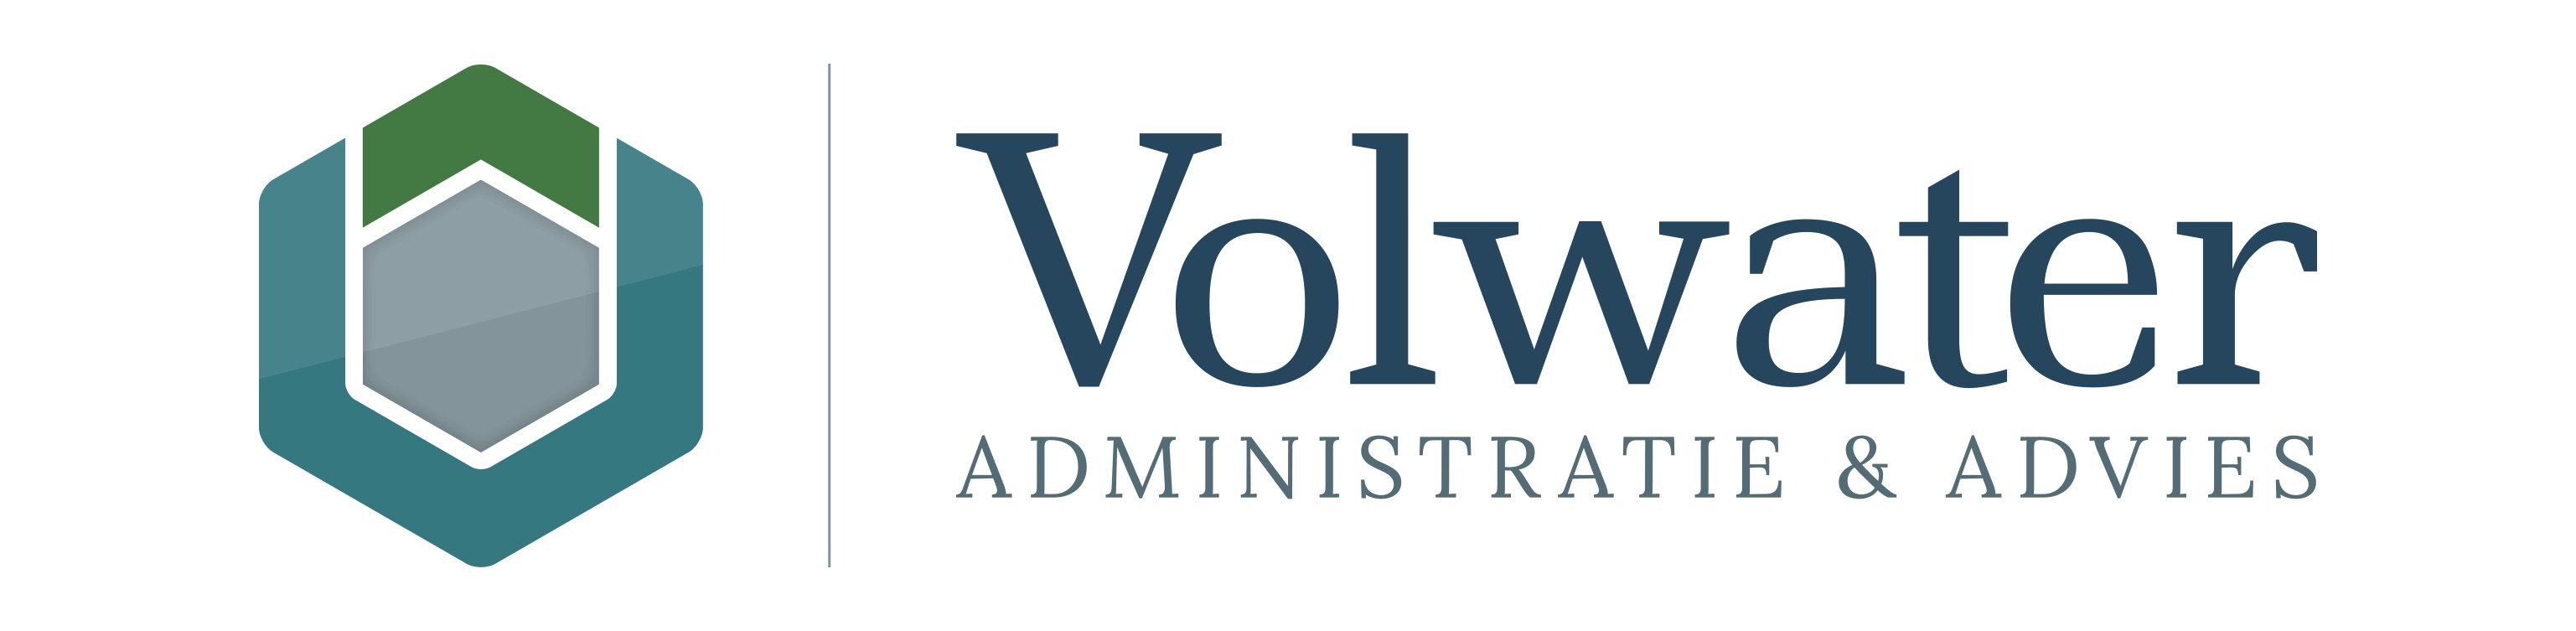 Volwater Administratie & Advies